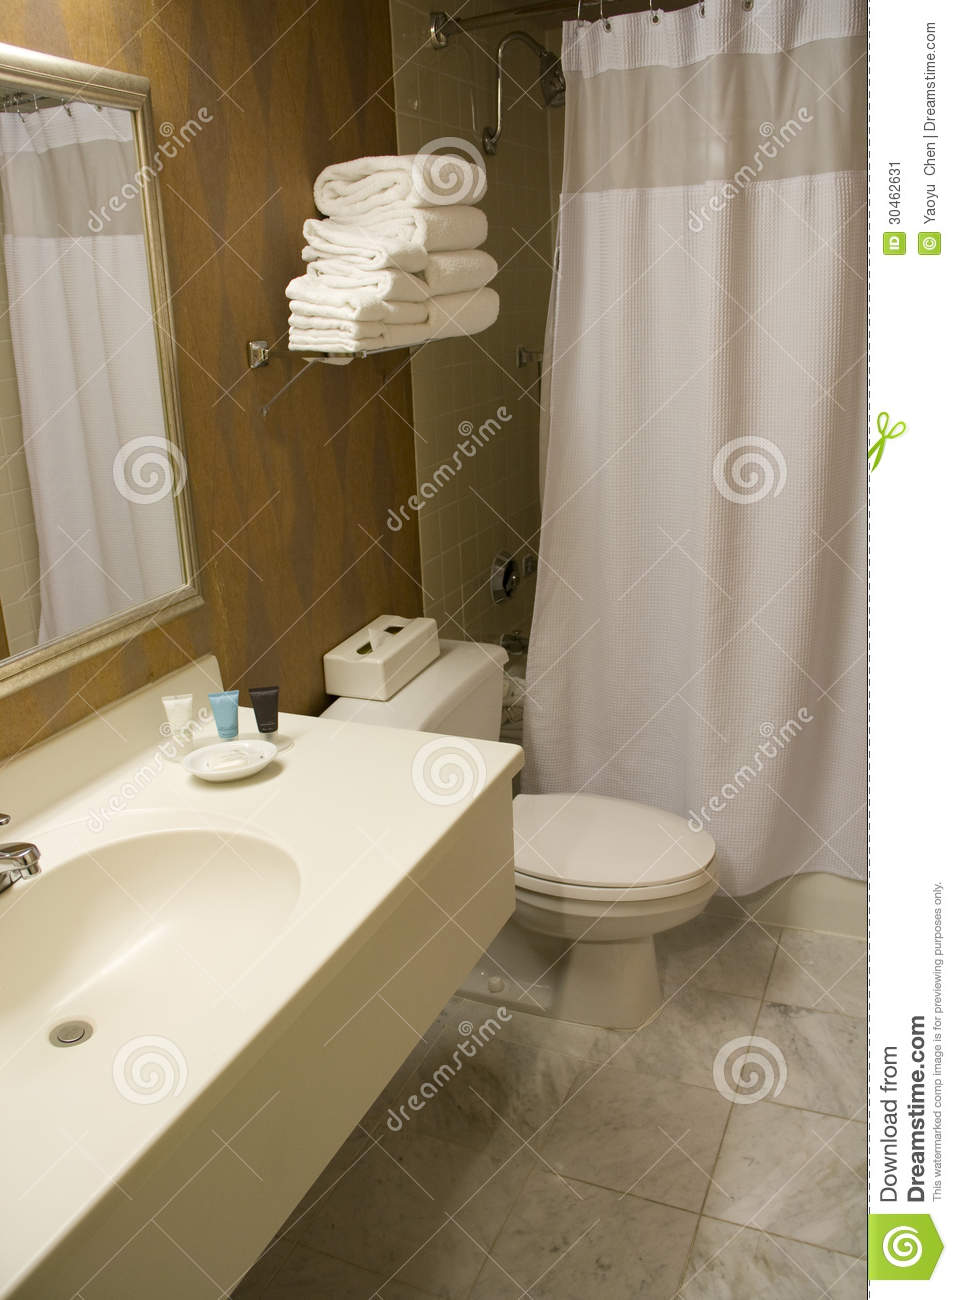 Relaxing Bathroom Colors: Hotel Bathroom Stock Image. Image Of Sparkle, Indoor